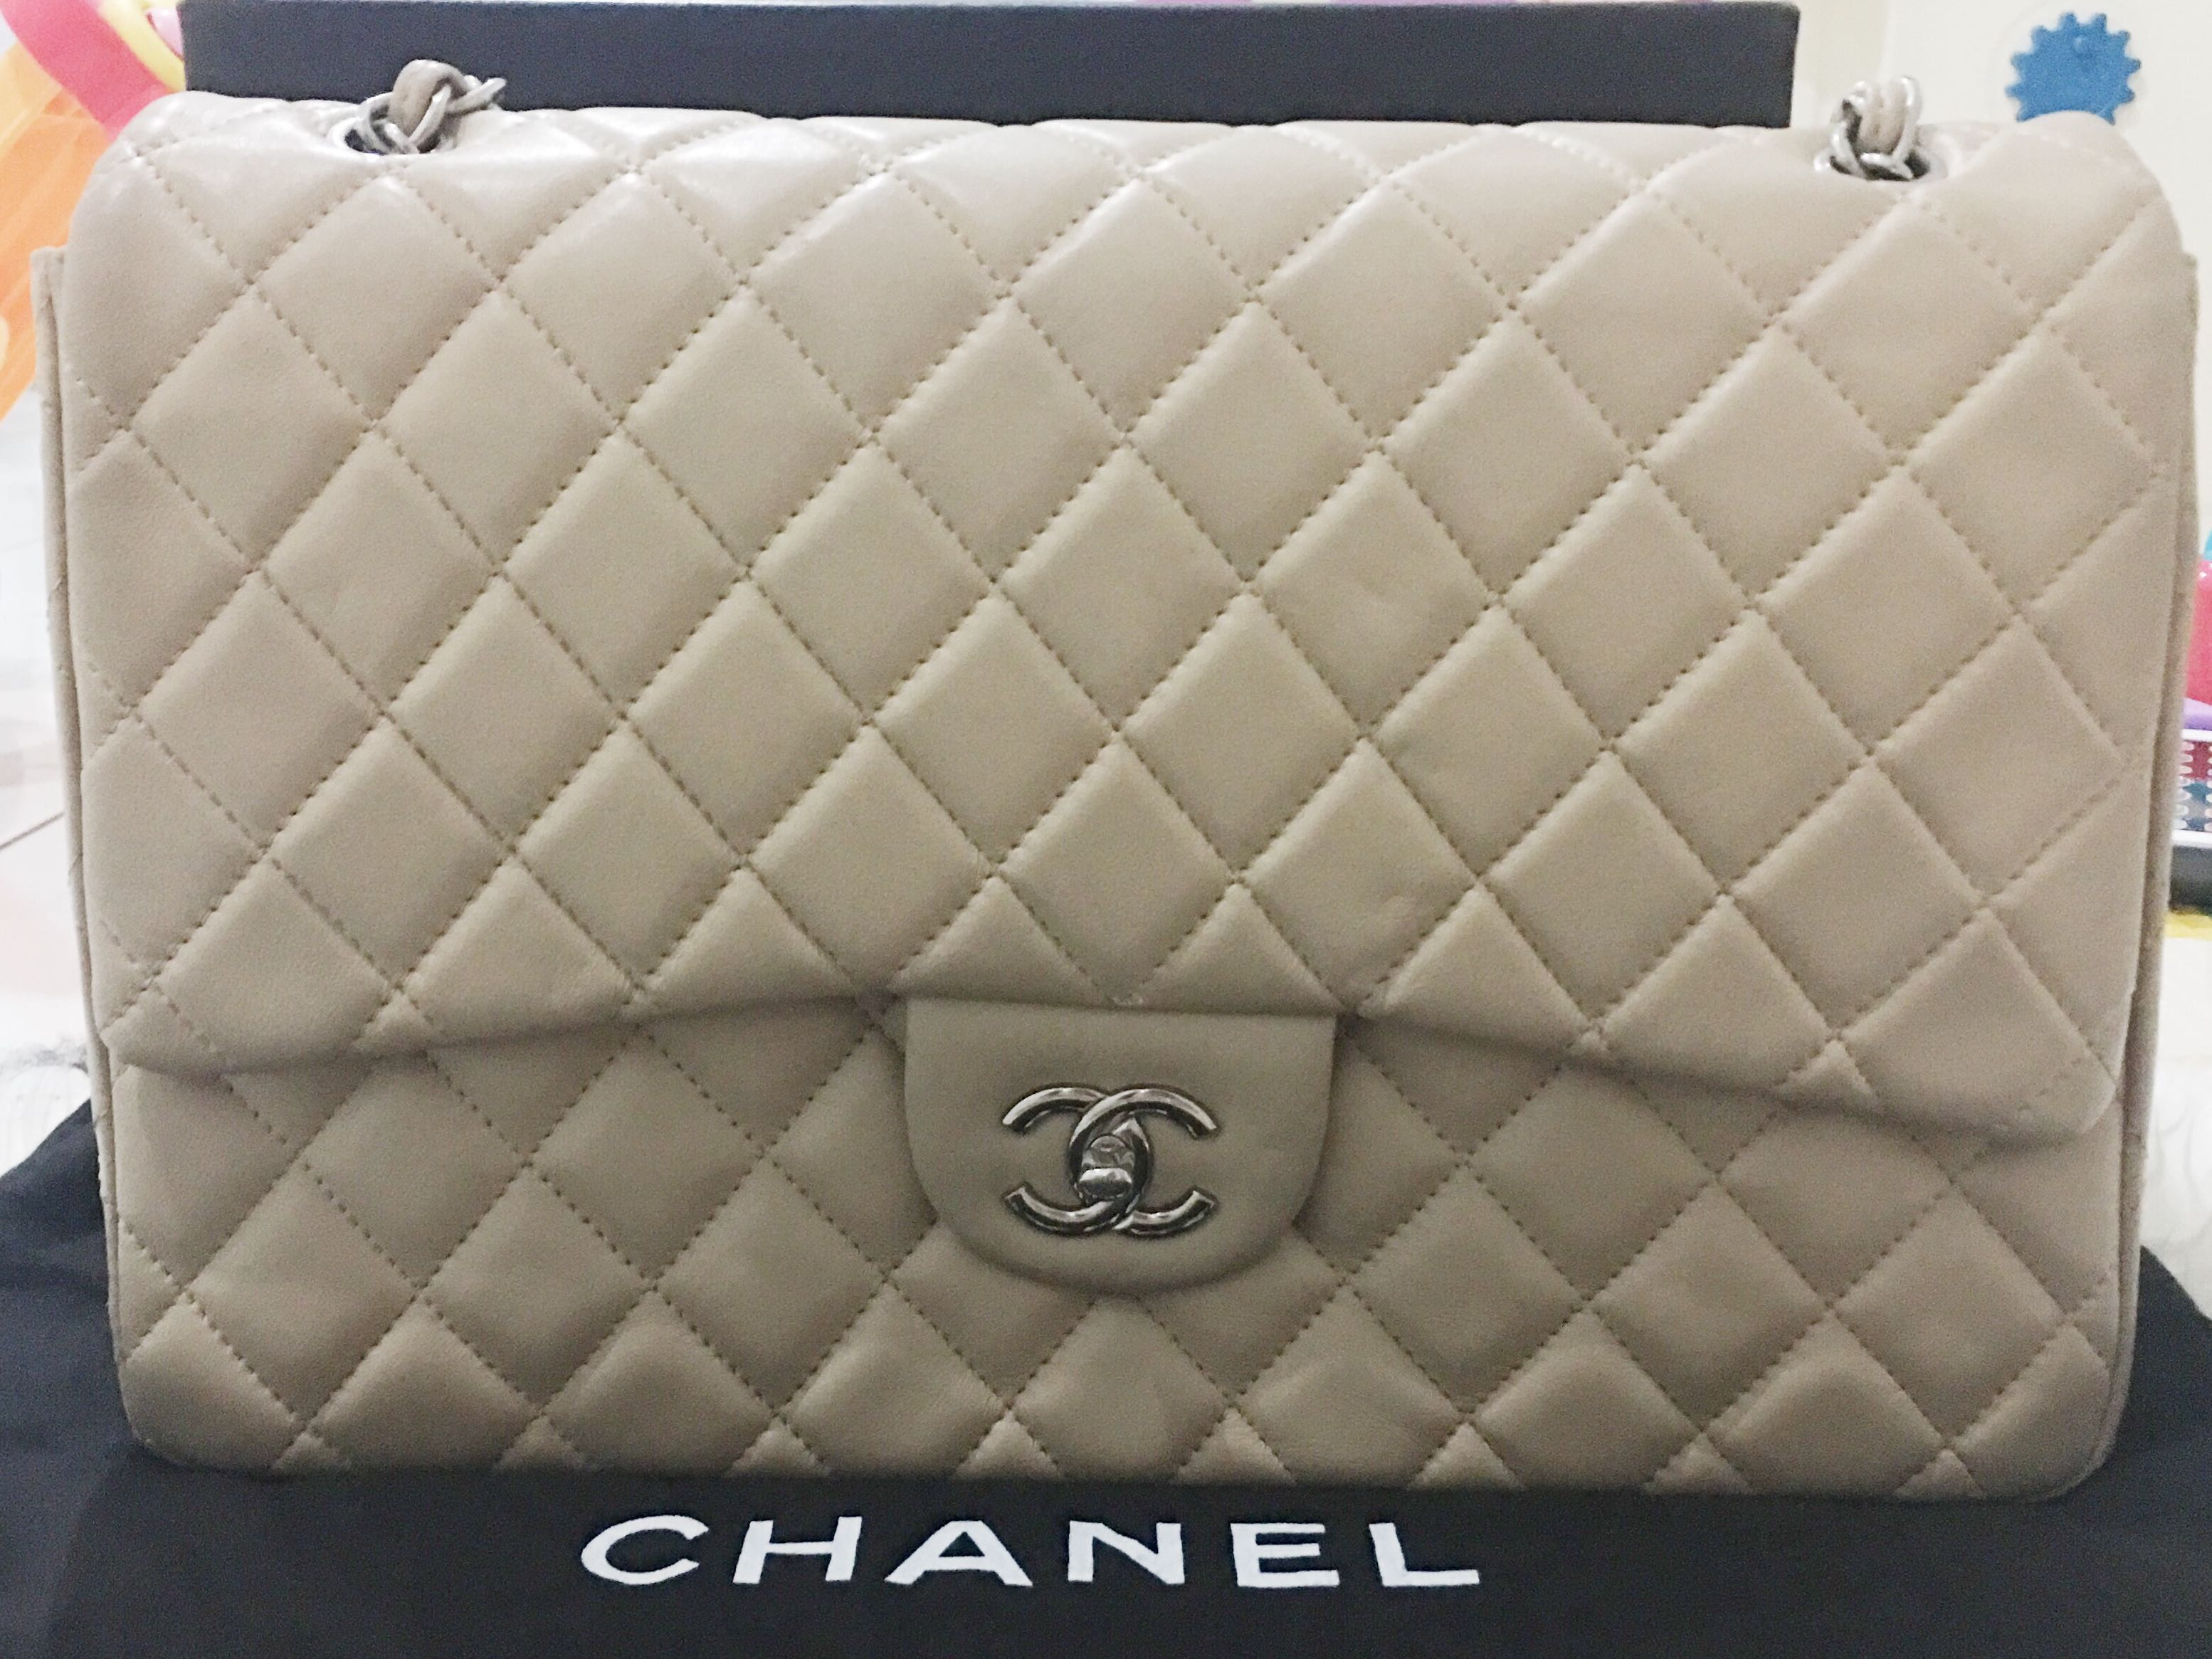 8574facfa491 Chanel lamb skin large, Luxury, Bags & Wallets on Carousell